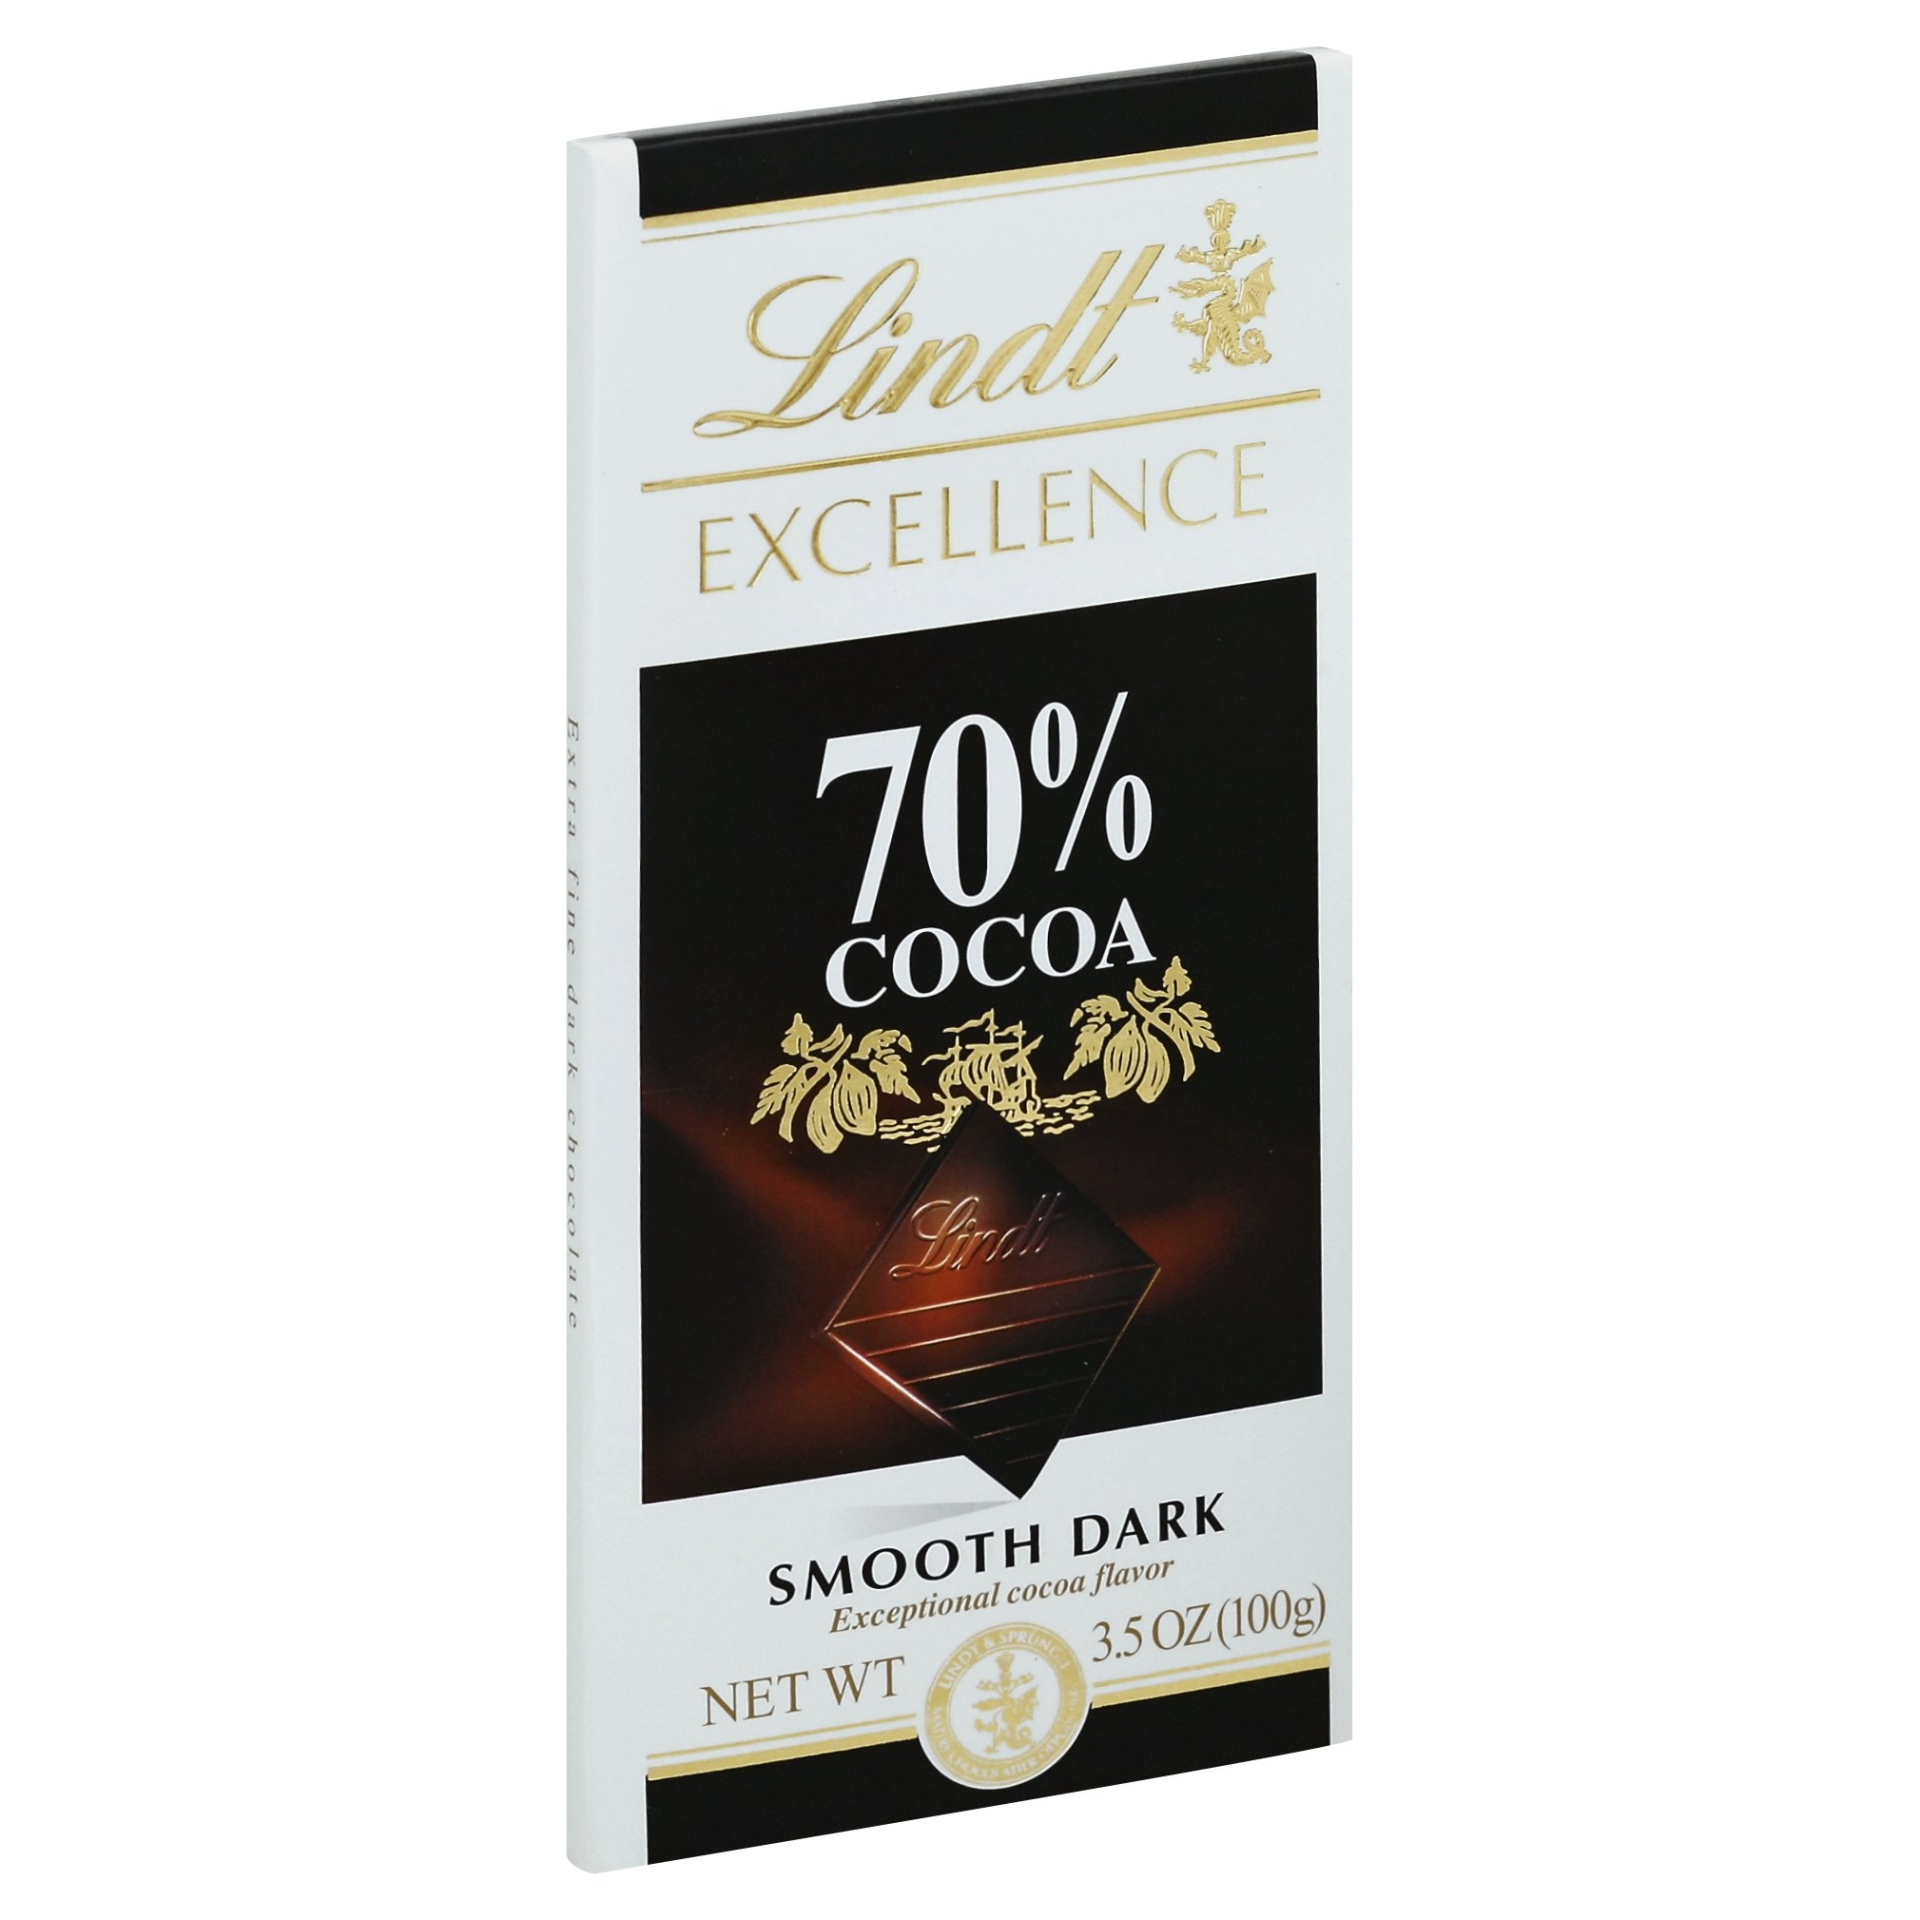 slide 1 of 2, Lindt Excellence 70% Cocoa Intense Dark Chocolate Bar,